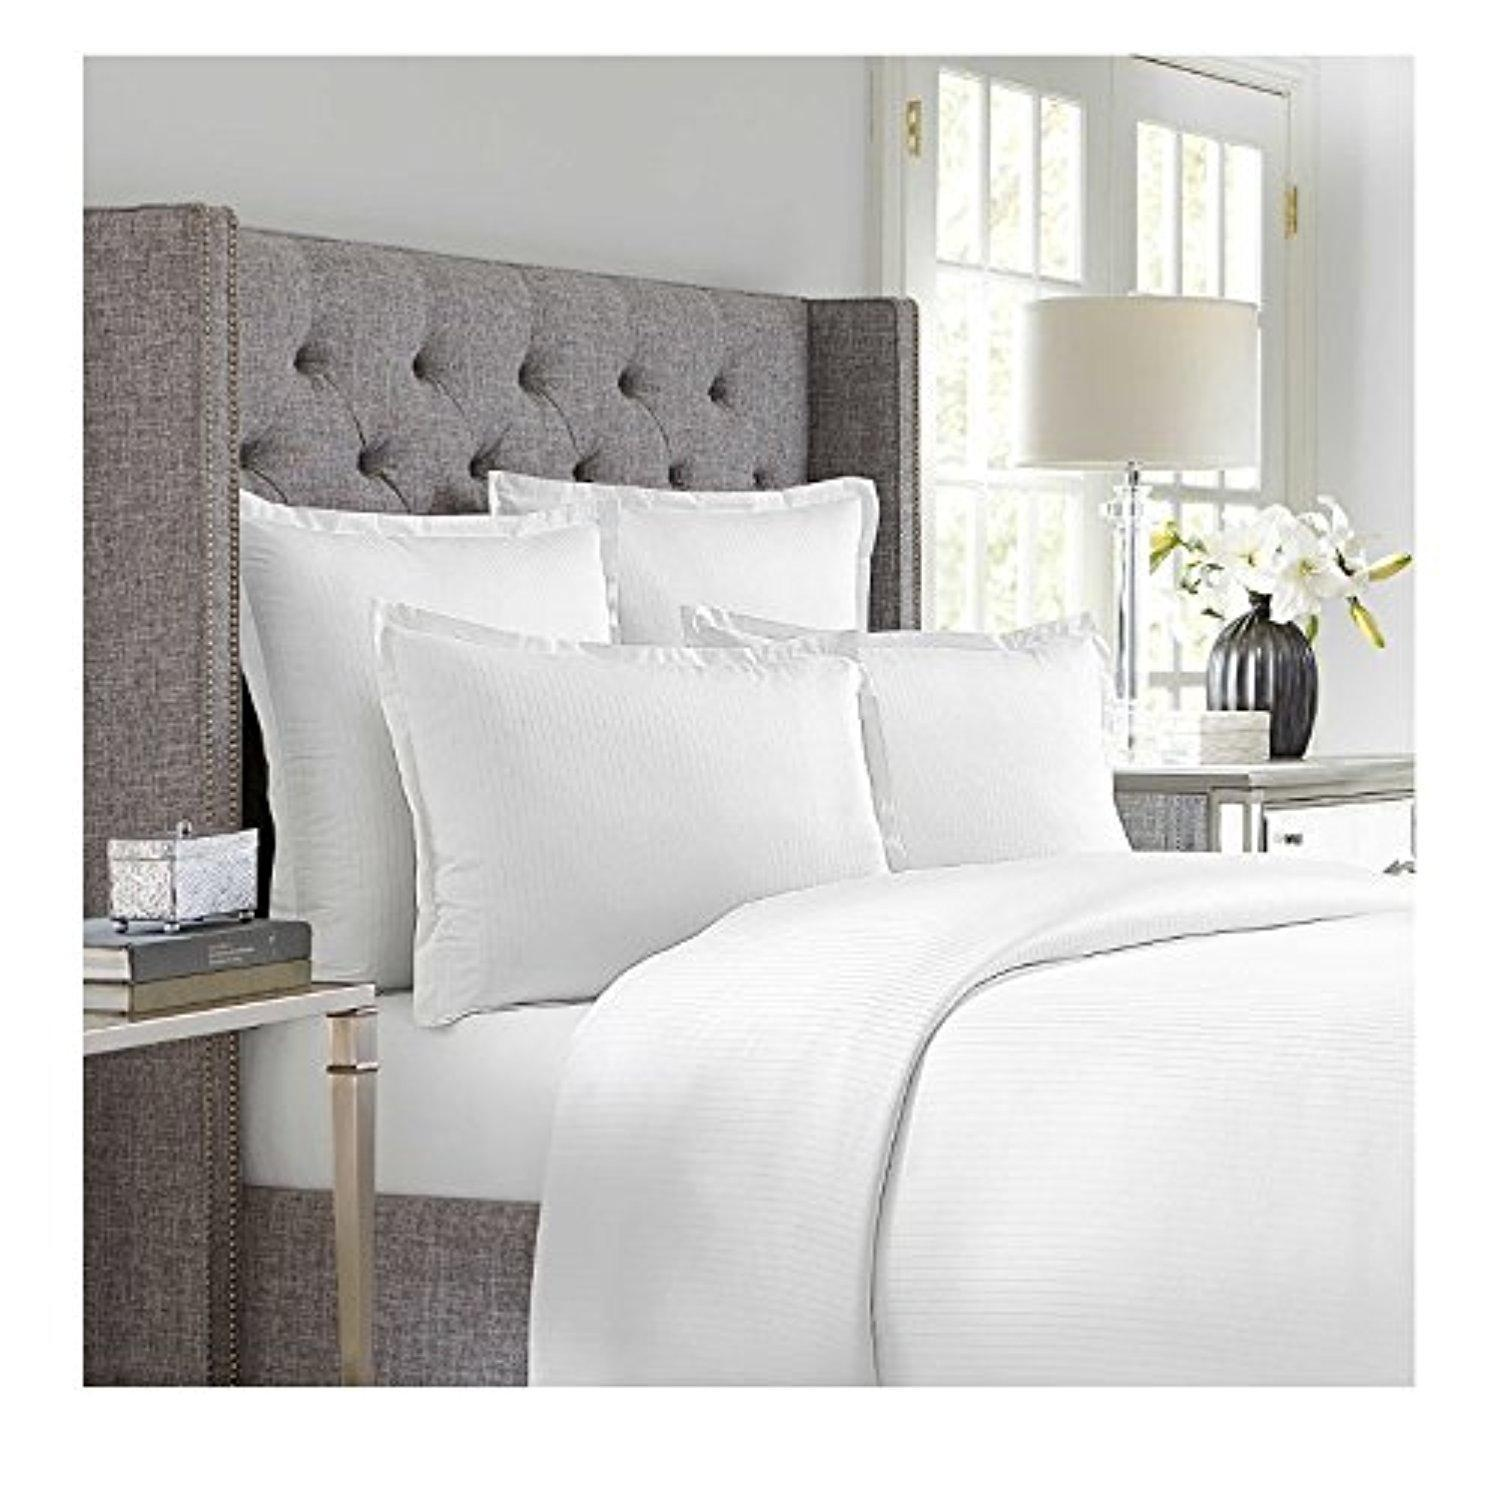 White Duvet Cover Queen | Bed Bath & Beyond Duvet Covers | Gold Duvet Cover